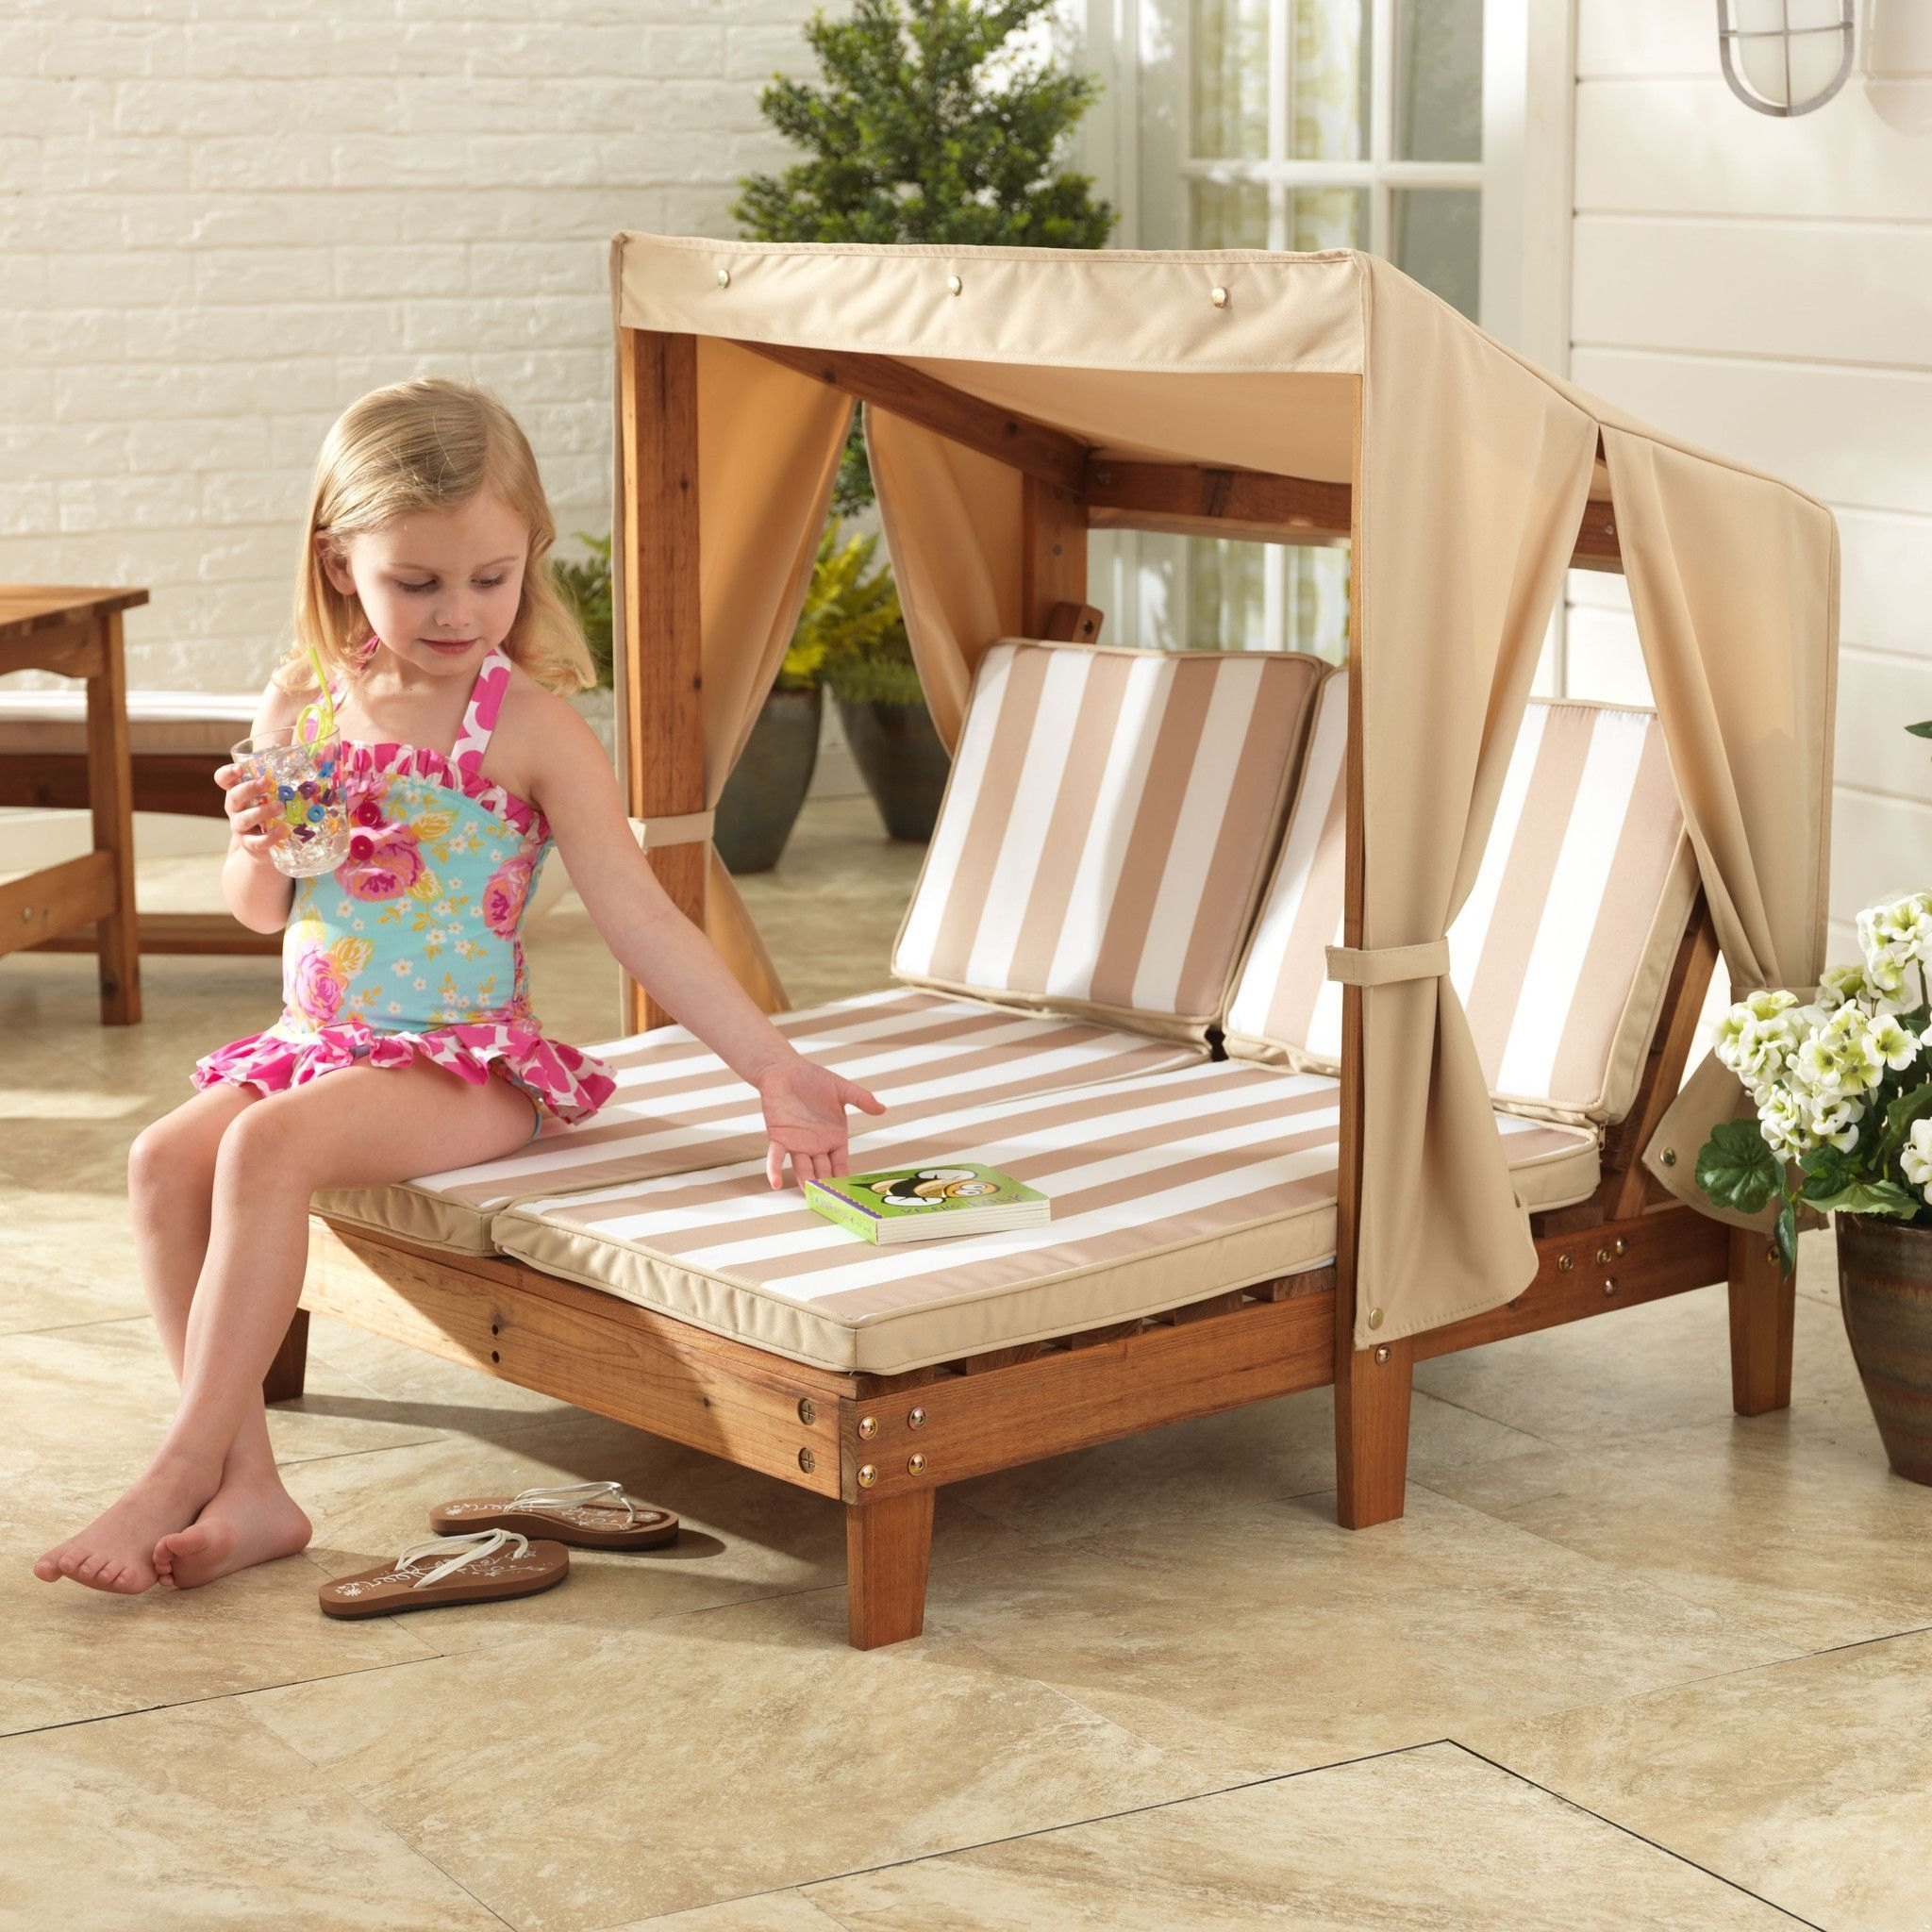 Children's Outdoor Chaise Lounge Chairs In Most Current Nora Needs This In Her Little Baby Life (View 5 of 15)